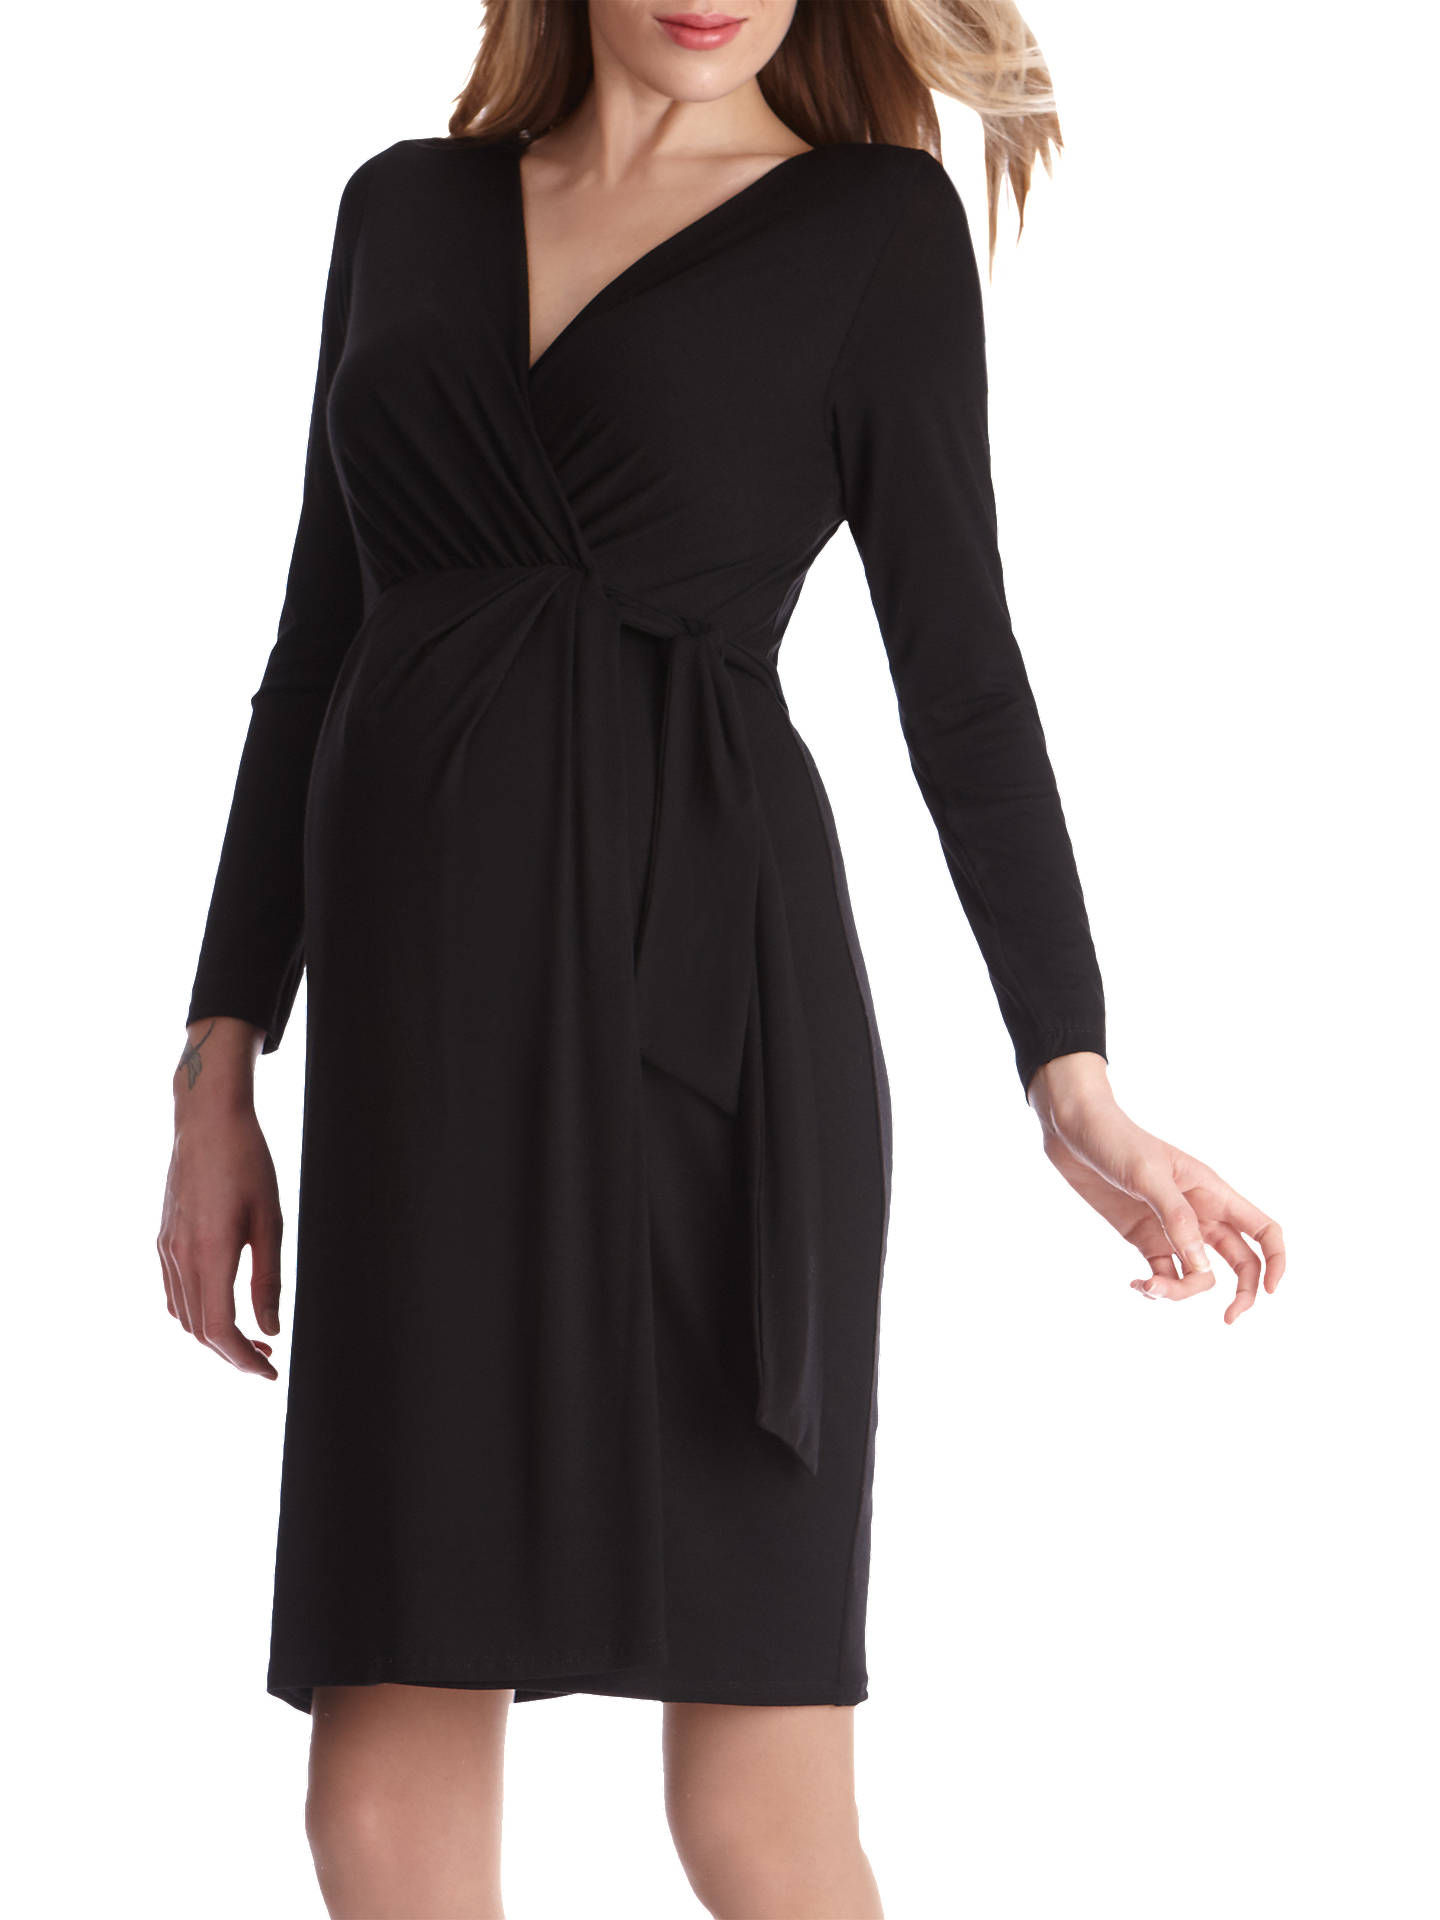 9cd643f224ede ... Buy Séraphine Tiana Maternity Tie Dress, Black, 8 Online at  johnlewis.com ...